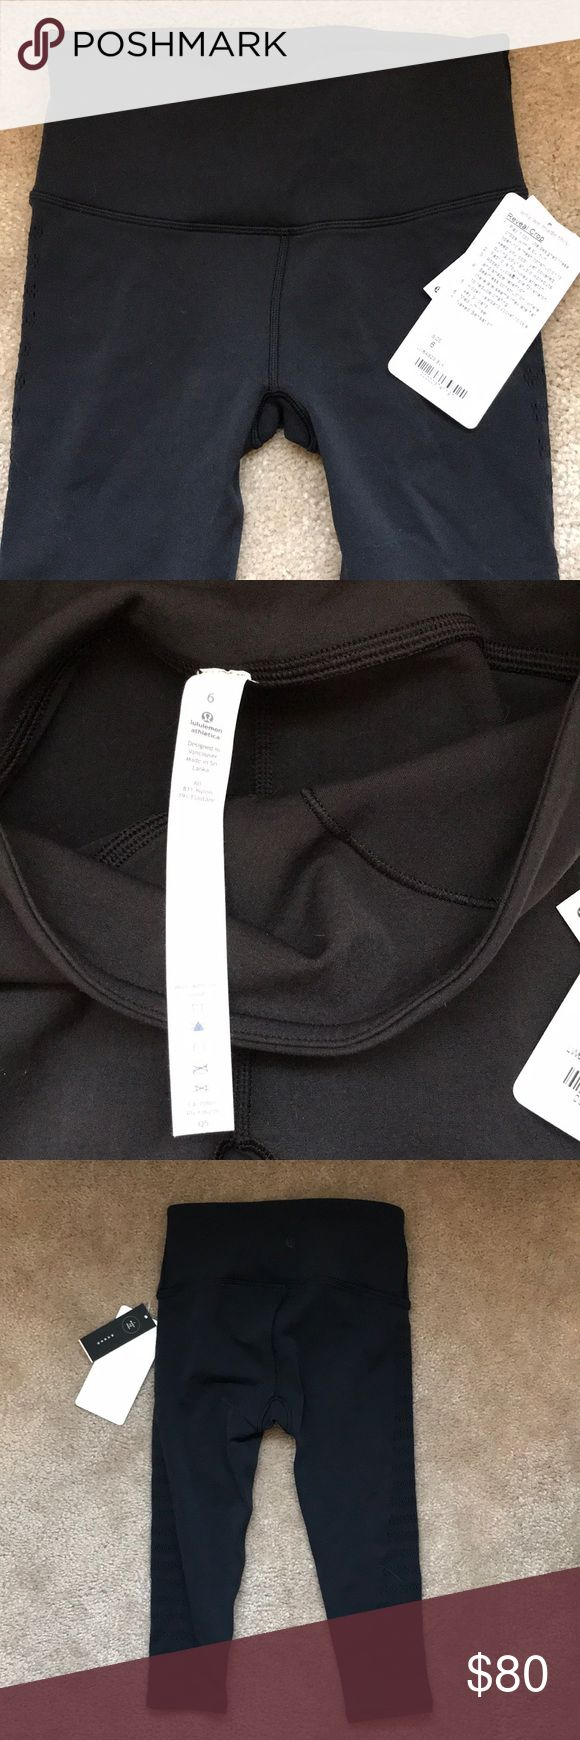 """NWT Lululemon Reveal Crop Stripes 15"""" Black Size 6 From website: Designed with built-in open-hole mesh construction to keep you cool, yet covered, during your studio workouts. Made with fabric that is four-way stretch. Designed for yoga, seamless construction reduces chafing, hidden pocket to stash your cards and keys, medium rise. Inseam is 17"""" lululemon athletica Pants Ankle & Cropped"""